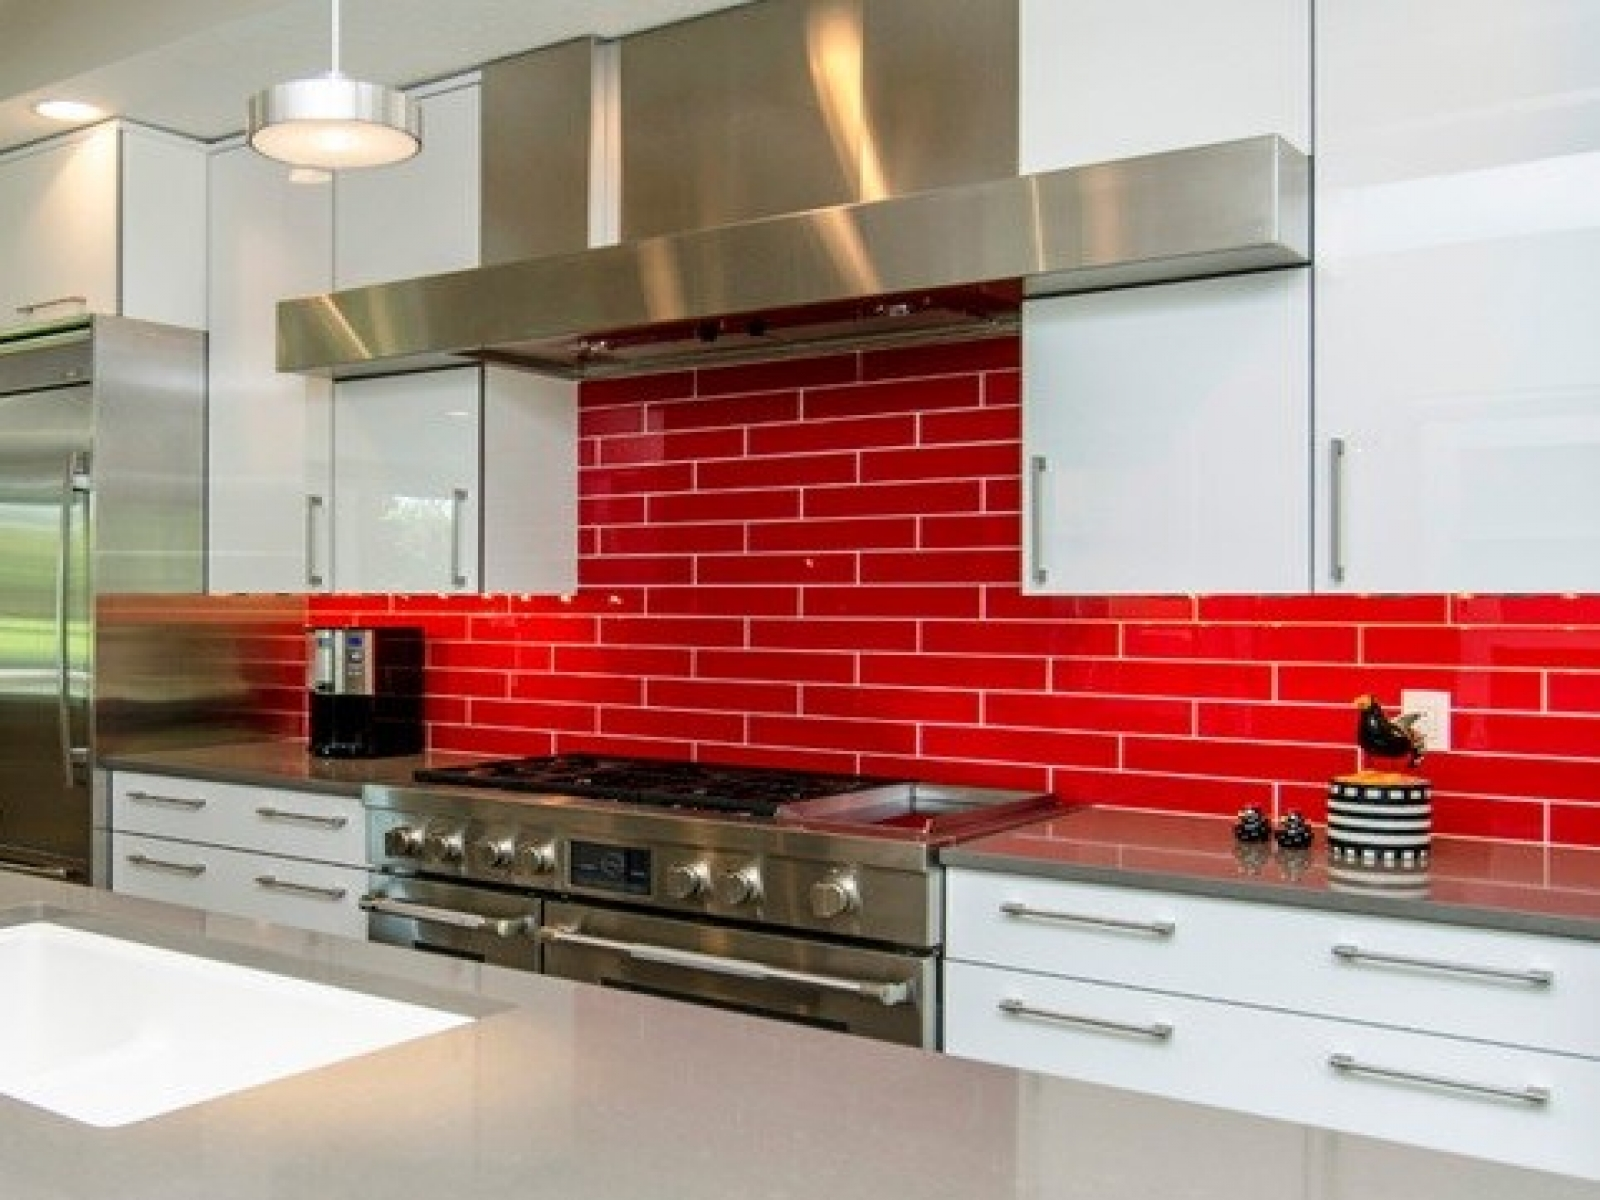 best kitchen backsplash designs. Bright Red Backsplash 50 Best Kitchen Ideas For 2018